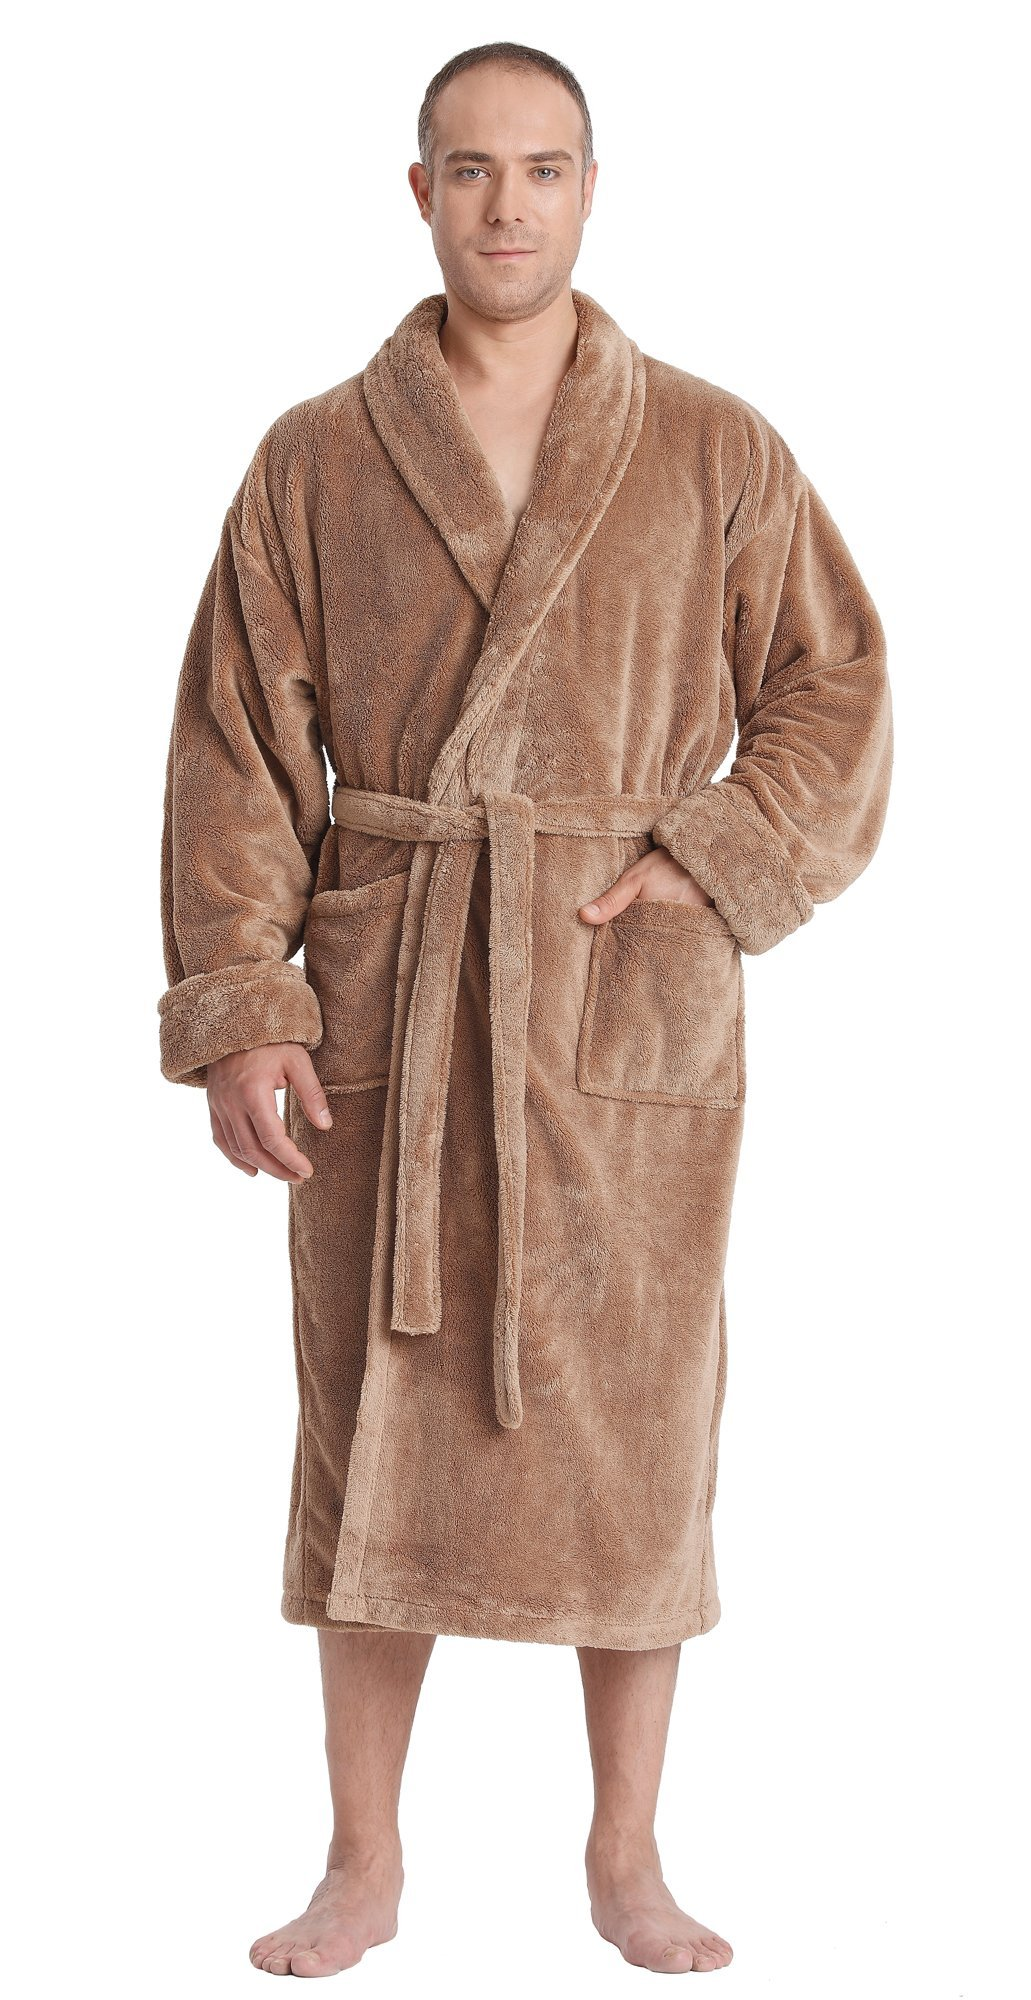 Arus Men's Satin Touch Shawl Fleece Bathrobe Turkish Soft Plush Robe Camel XXL